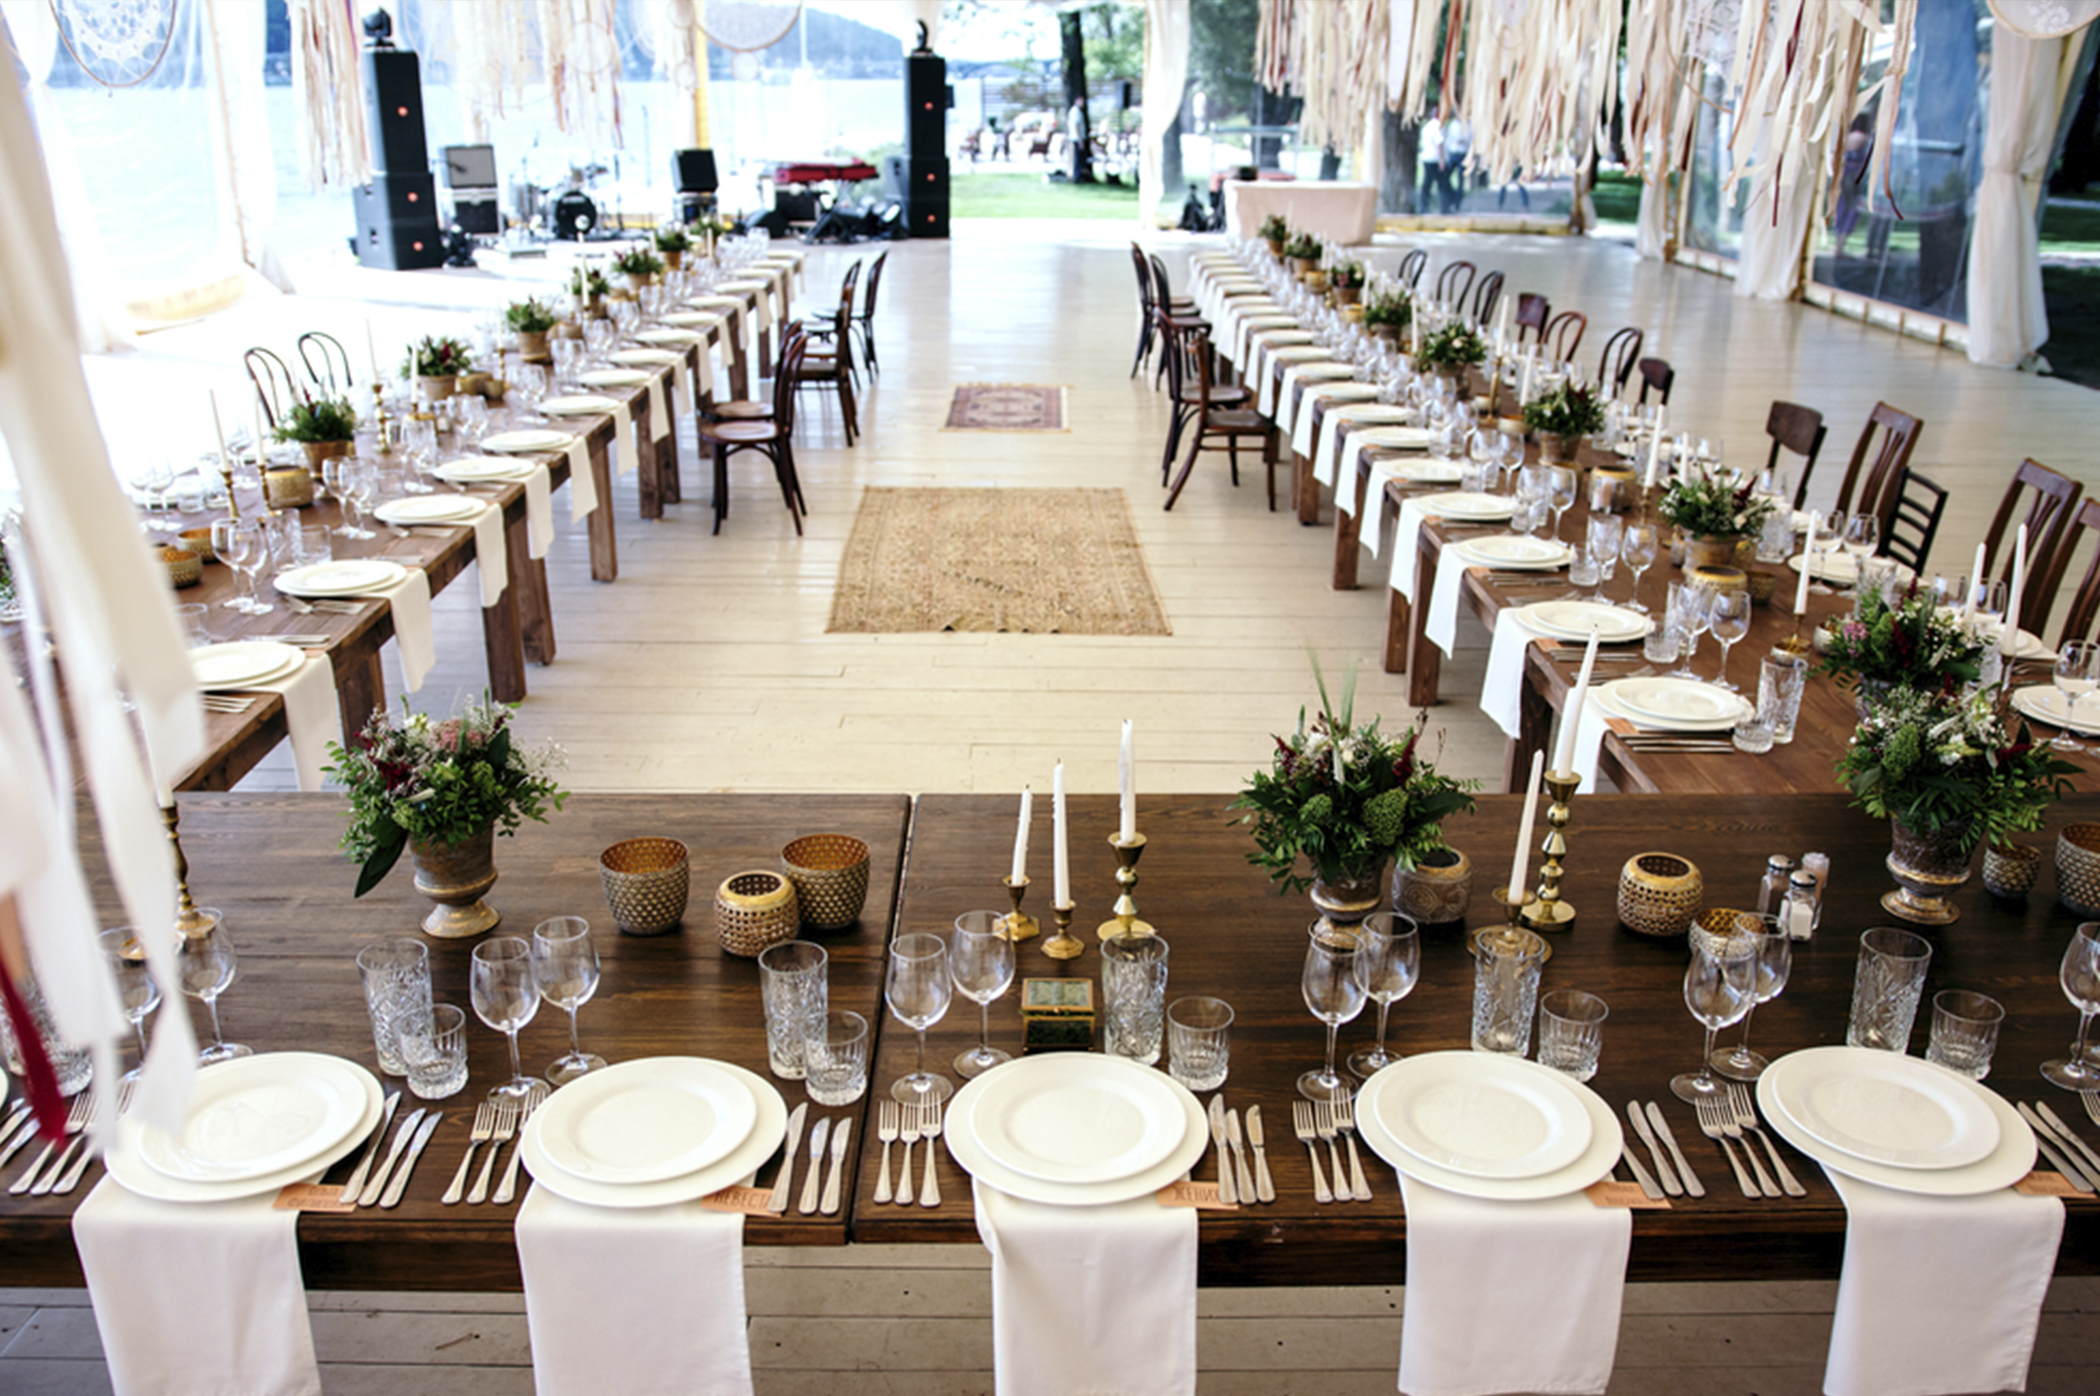 chair covers hire perth modern brown leather desk wedding table decorations sydney interiorhalloween co